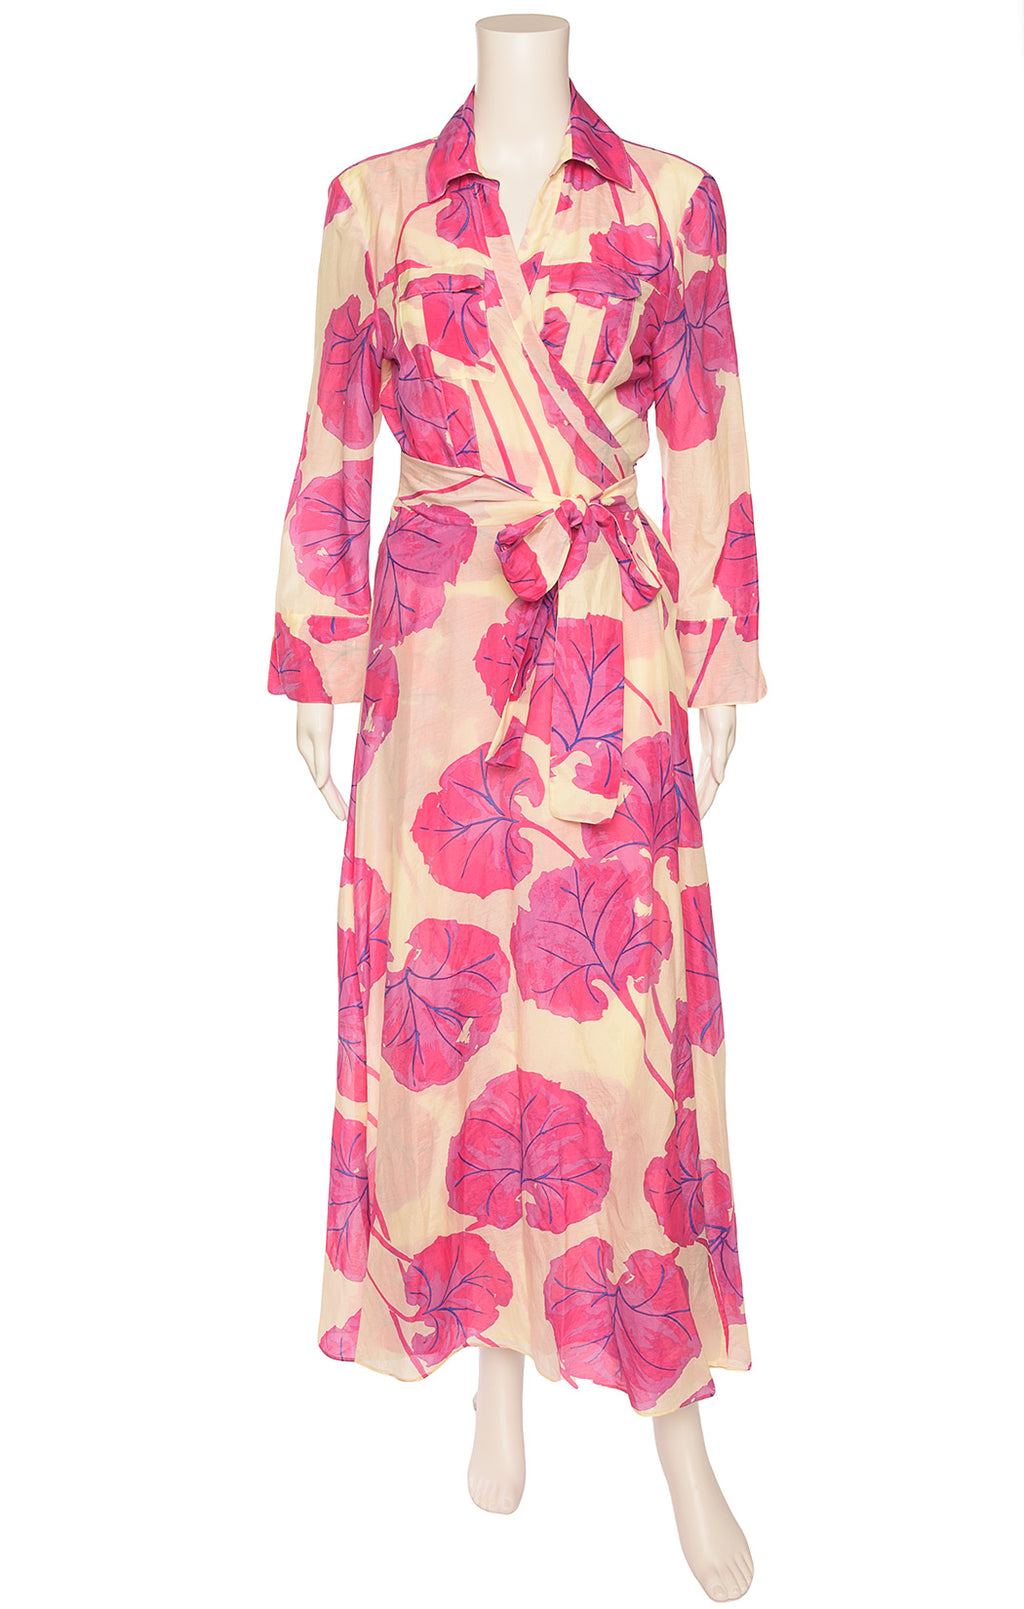 Front view of DIANE VON FURSTENBERG  Dress Size: Medium